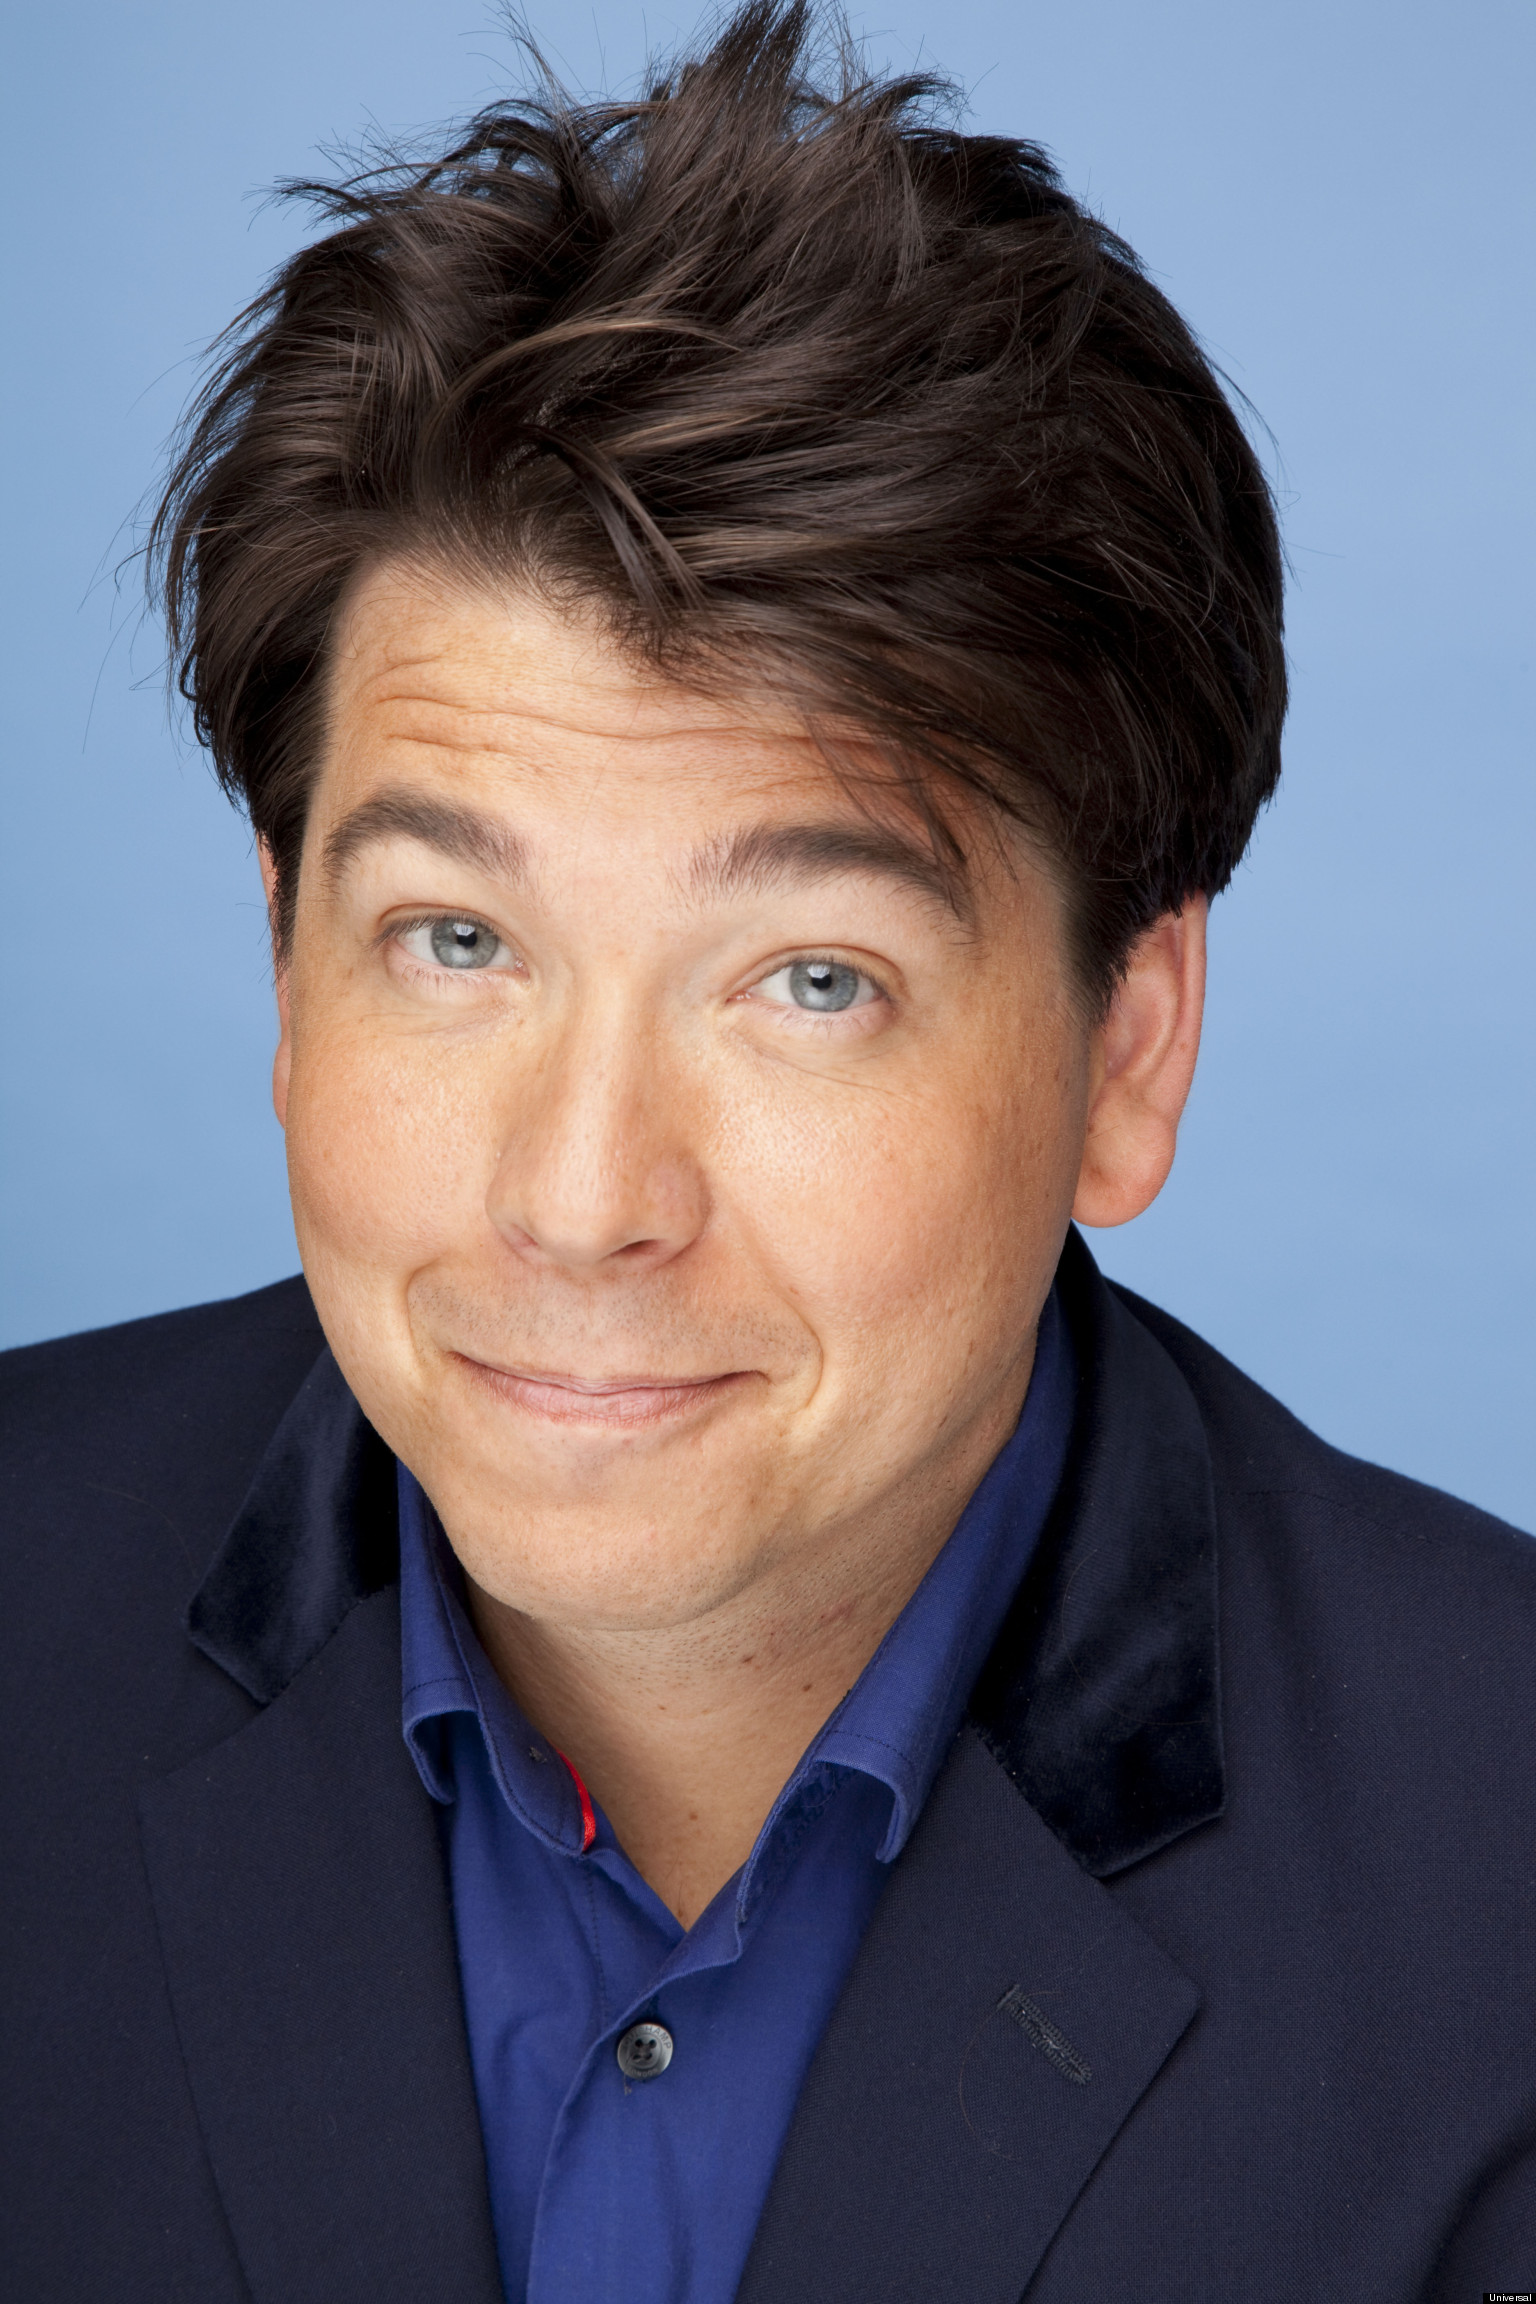 Michael McIntyre EXCLUSIVE CLIP Michael McIntyre Master Of The Absurd